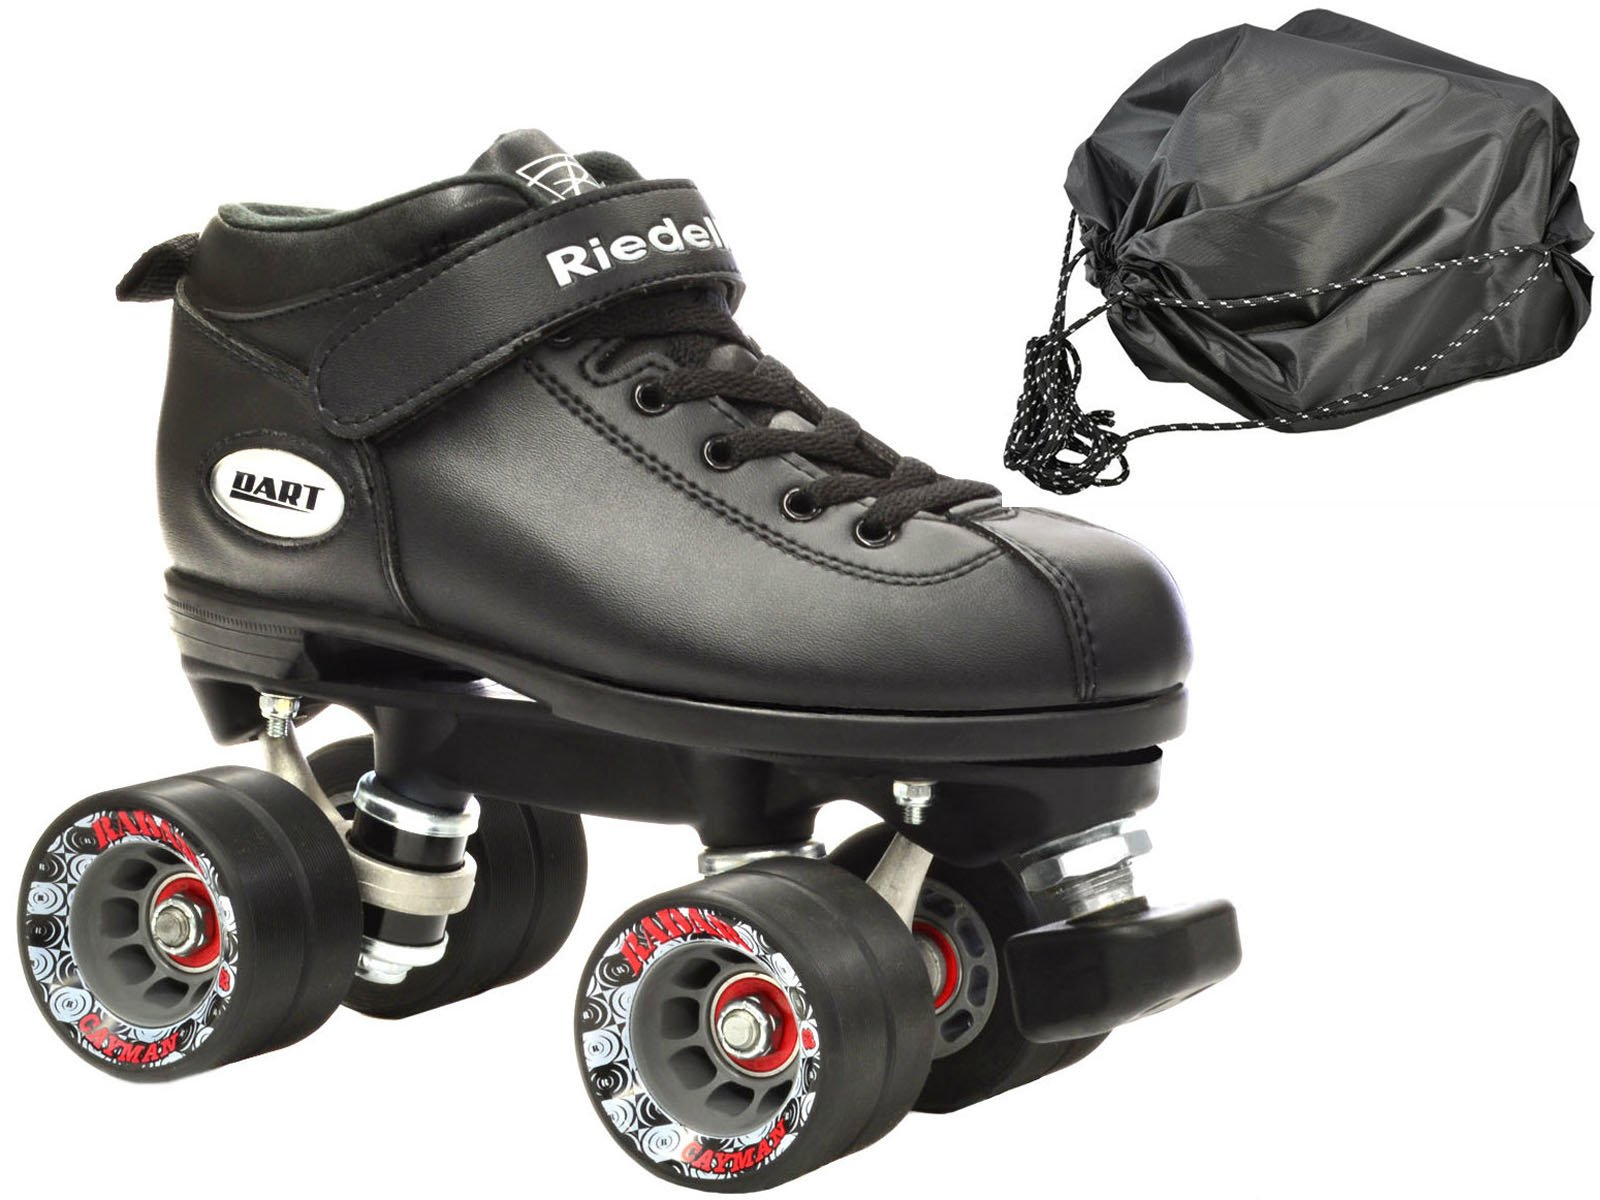 Riedell Dart Vader Quad Roller Derby Speed Skate Bundle w/ Drawstring Skate Bag & 2 Pair of Laces (Gray & Black) (Mens 9 / Ladies 10) by Riedell